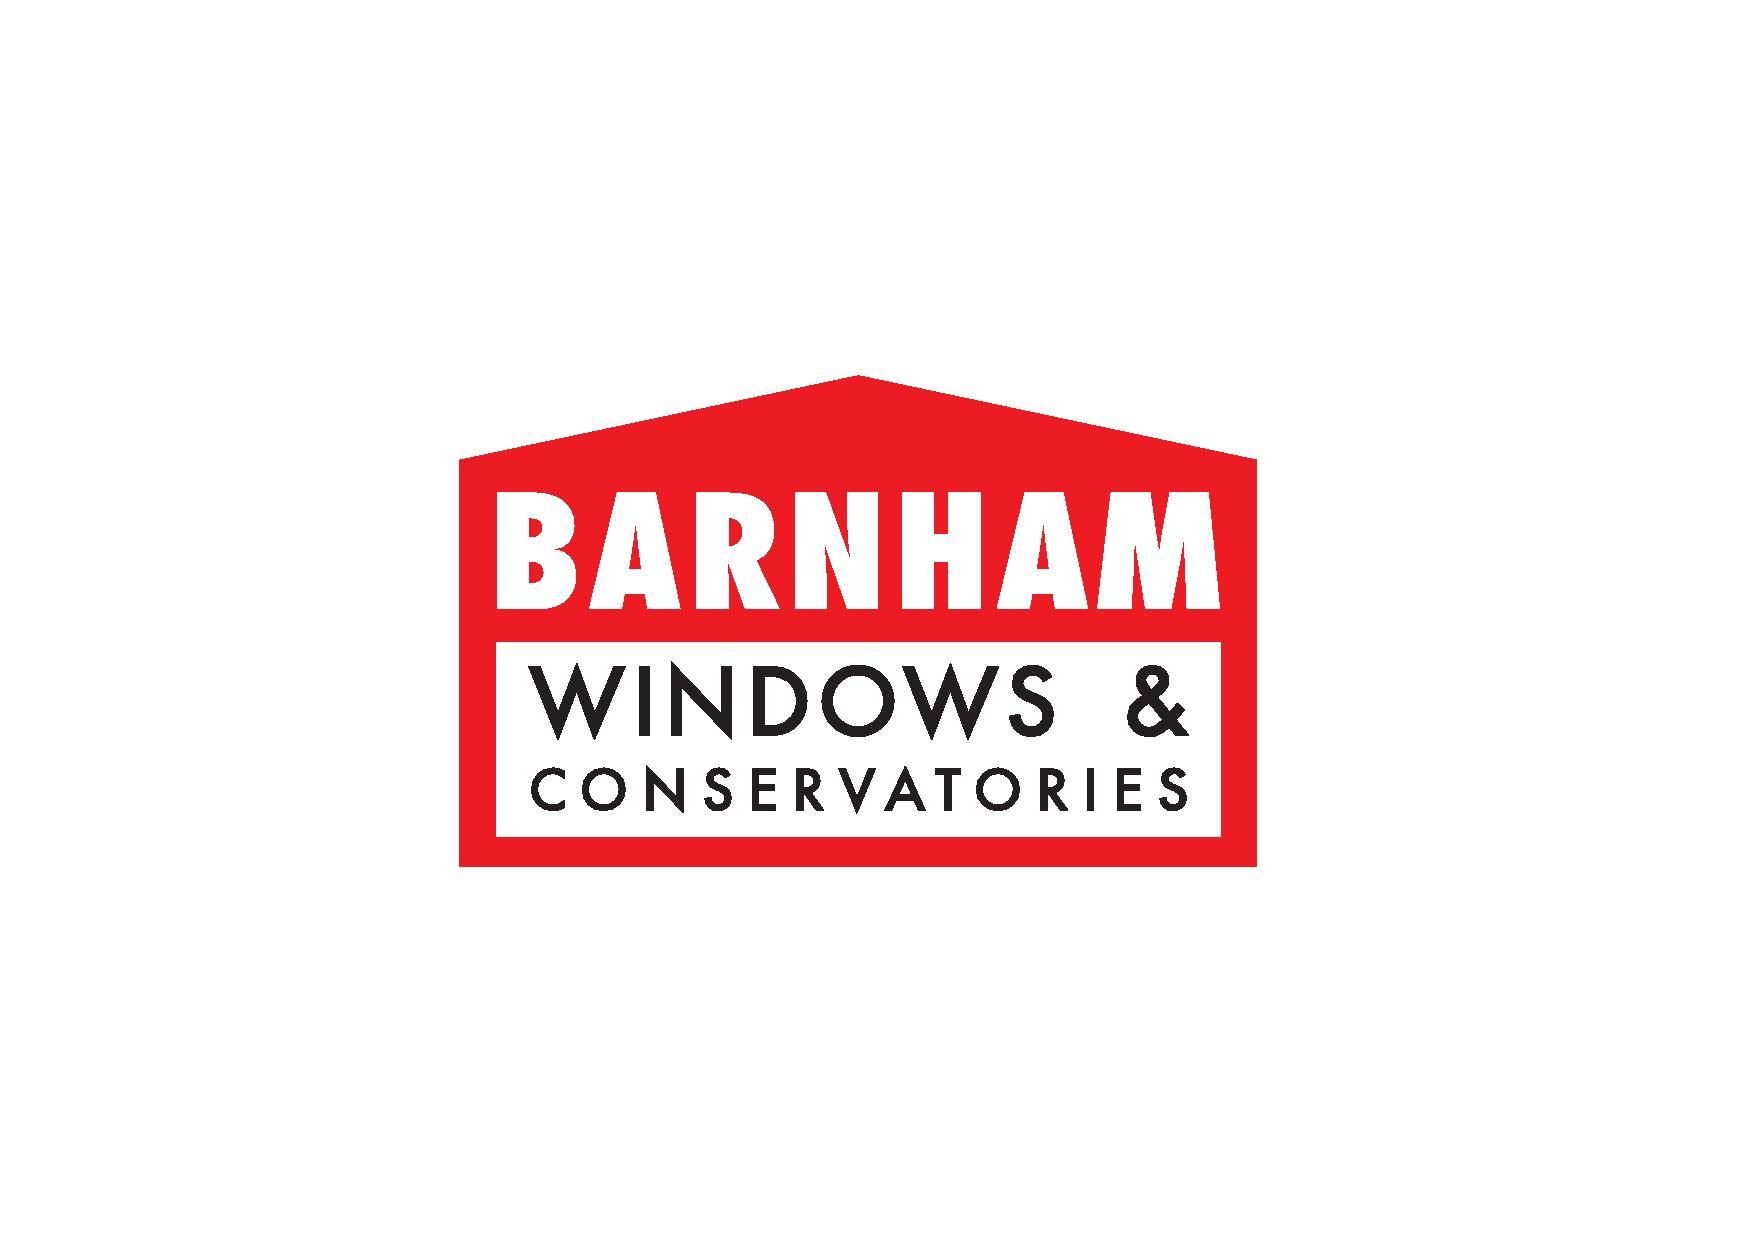 Barnham Windows & Conservatories